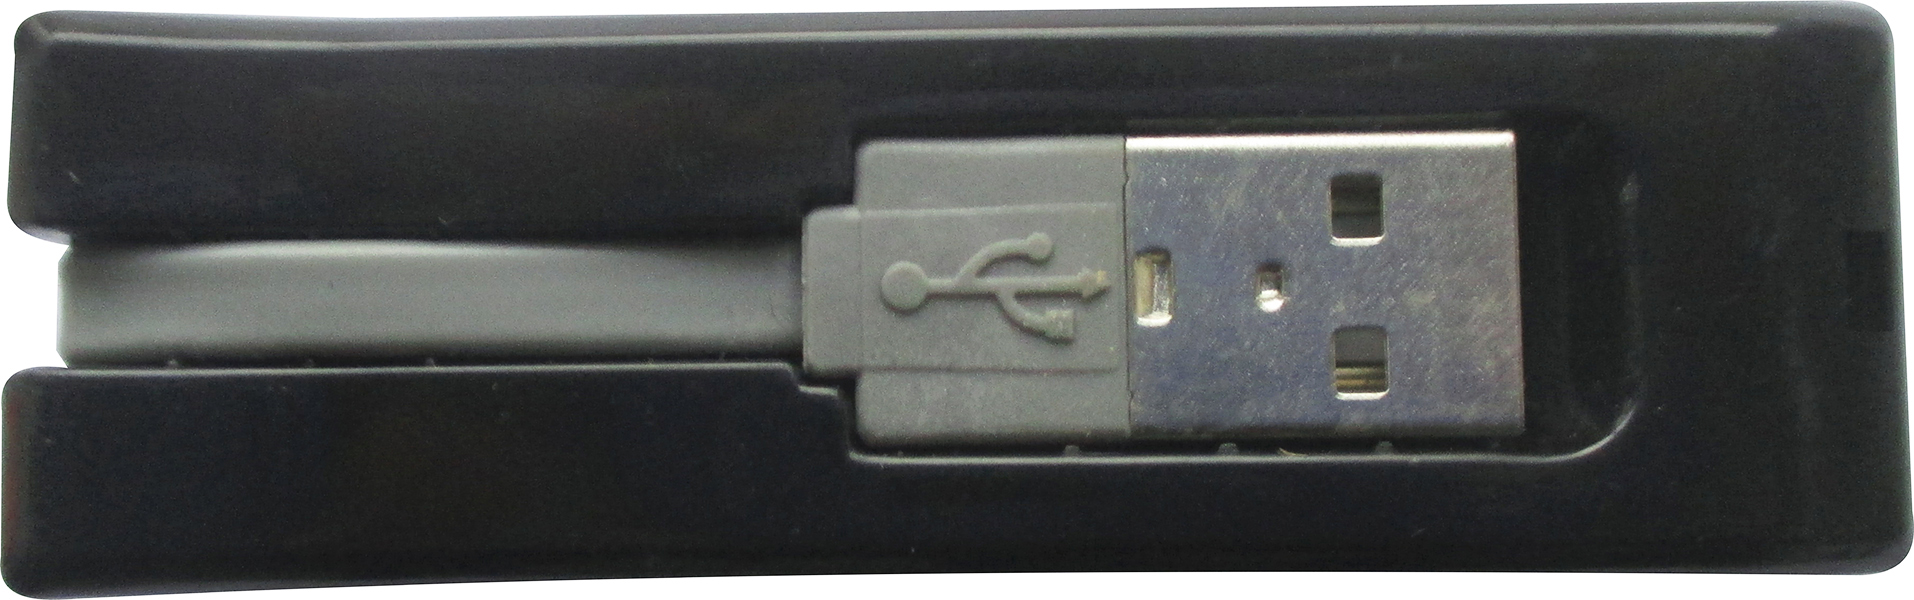 E-C 1905 4 slot usb flip 2,0 Up to 16G Epro